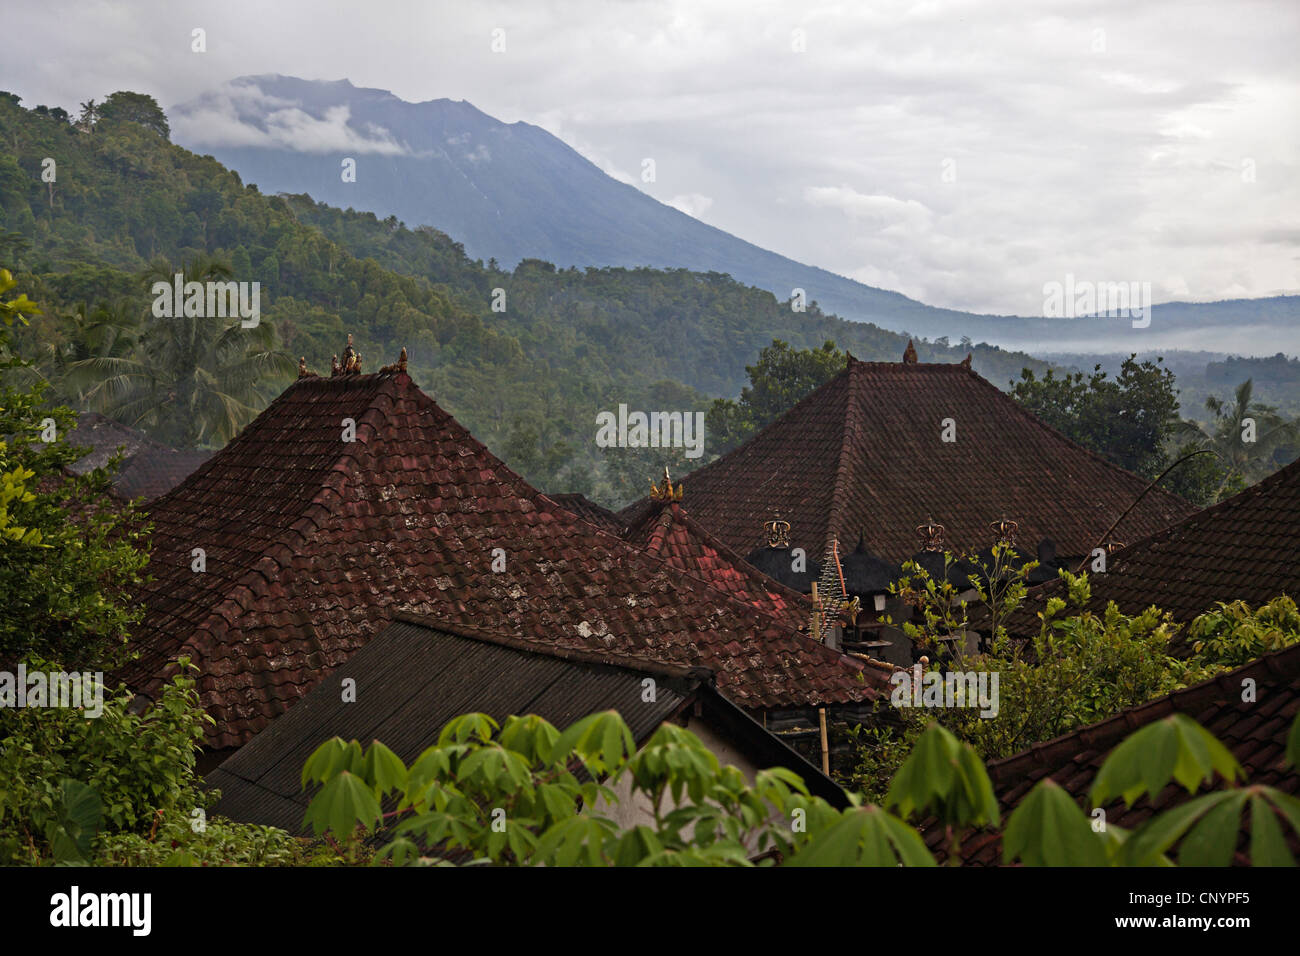 a rural village on the slopes of Gunung Agung, Indonesia, Bali - Stock Image